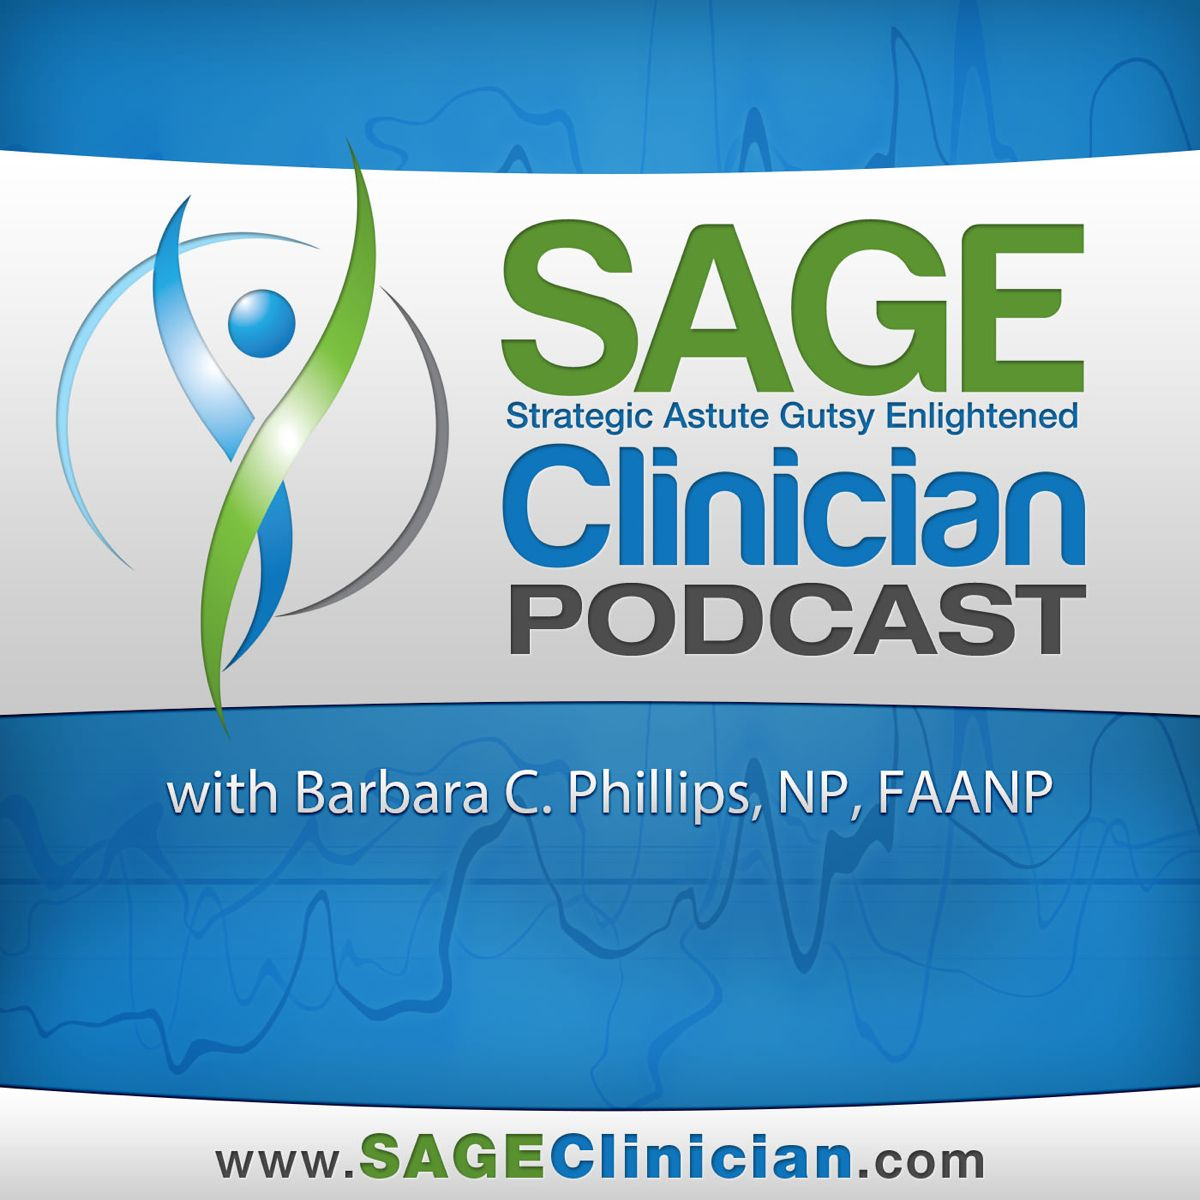 This is the podcast for clinicians where we talk about the non-clinical aspects of being a healthcare provider. Business, policy, leadership, and personal/professional development. Subscribe at www.SAGEClinician.com/subscribe